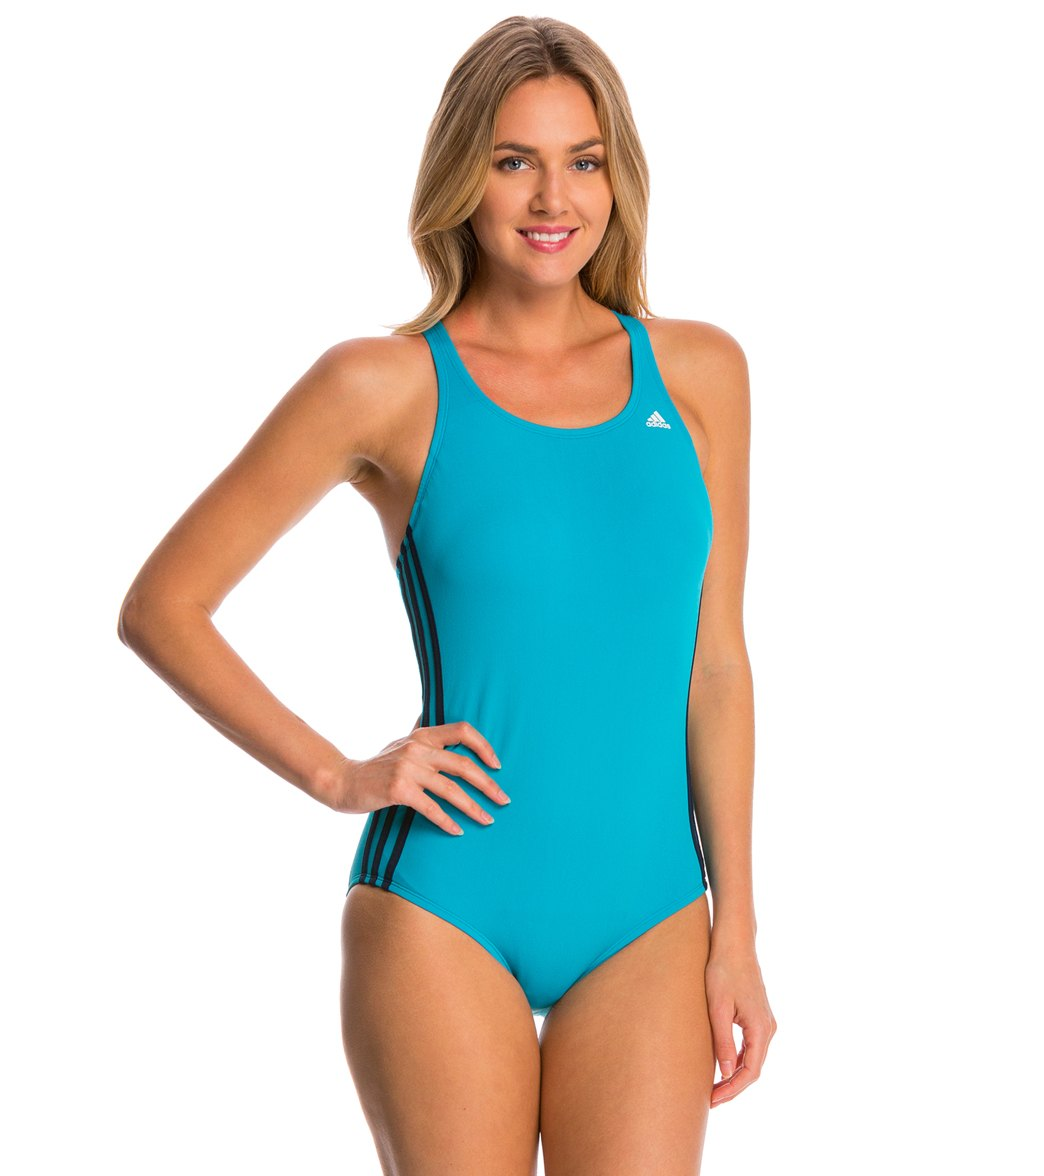 08ed07e37f28d quAdidas Women s 3-Stripe One Piece Swimsuit at SwimOutlet.com - Free  Shipping